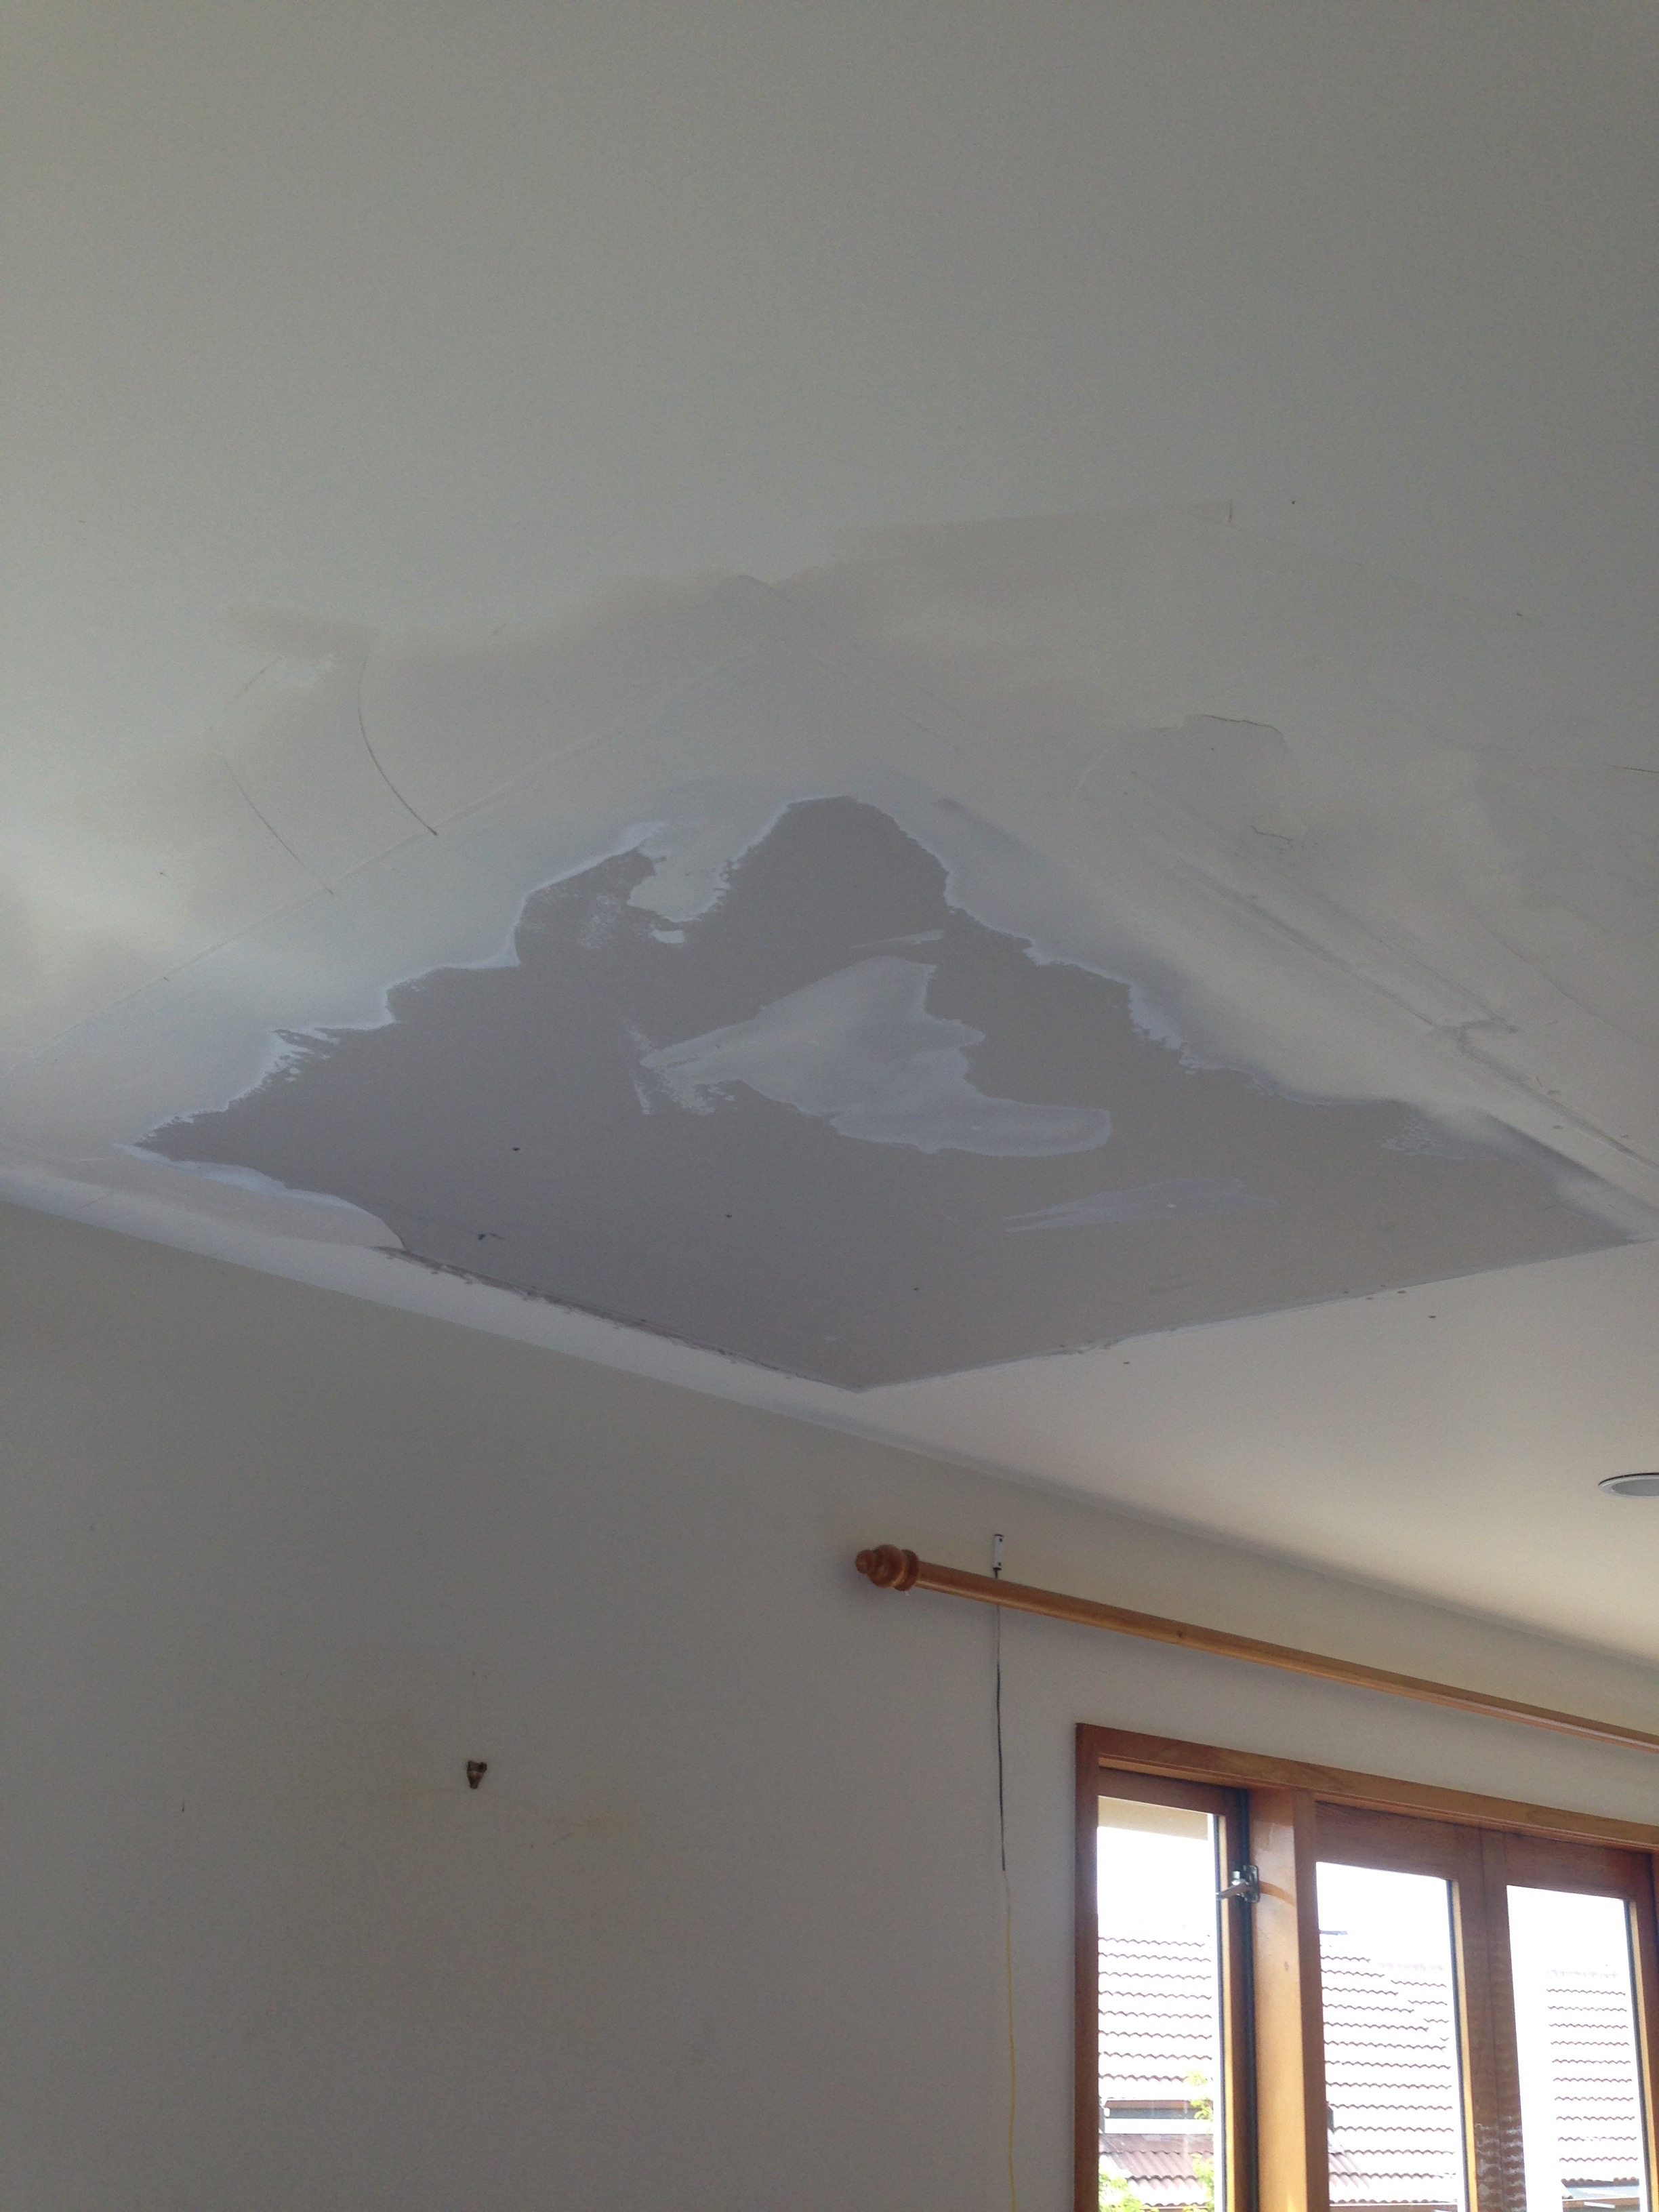 polyfilla poor attempted area plaster repair of x photo ceiling cracked fix bad